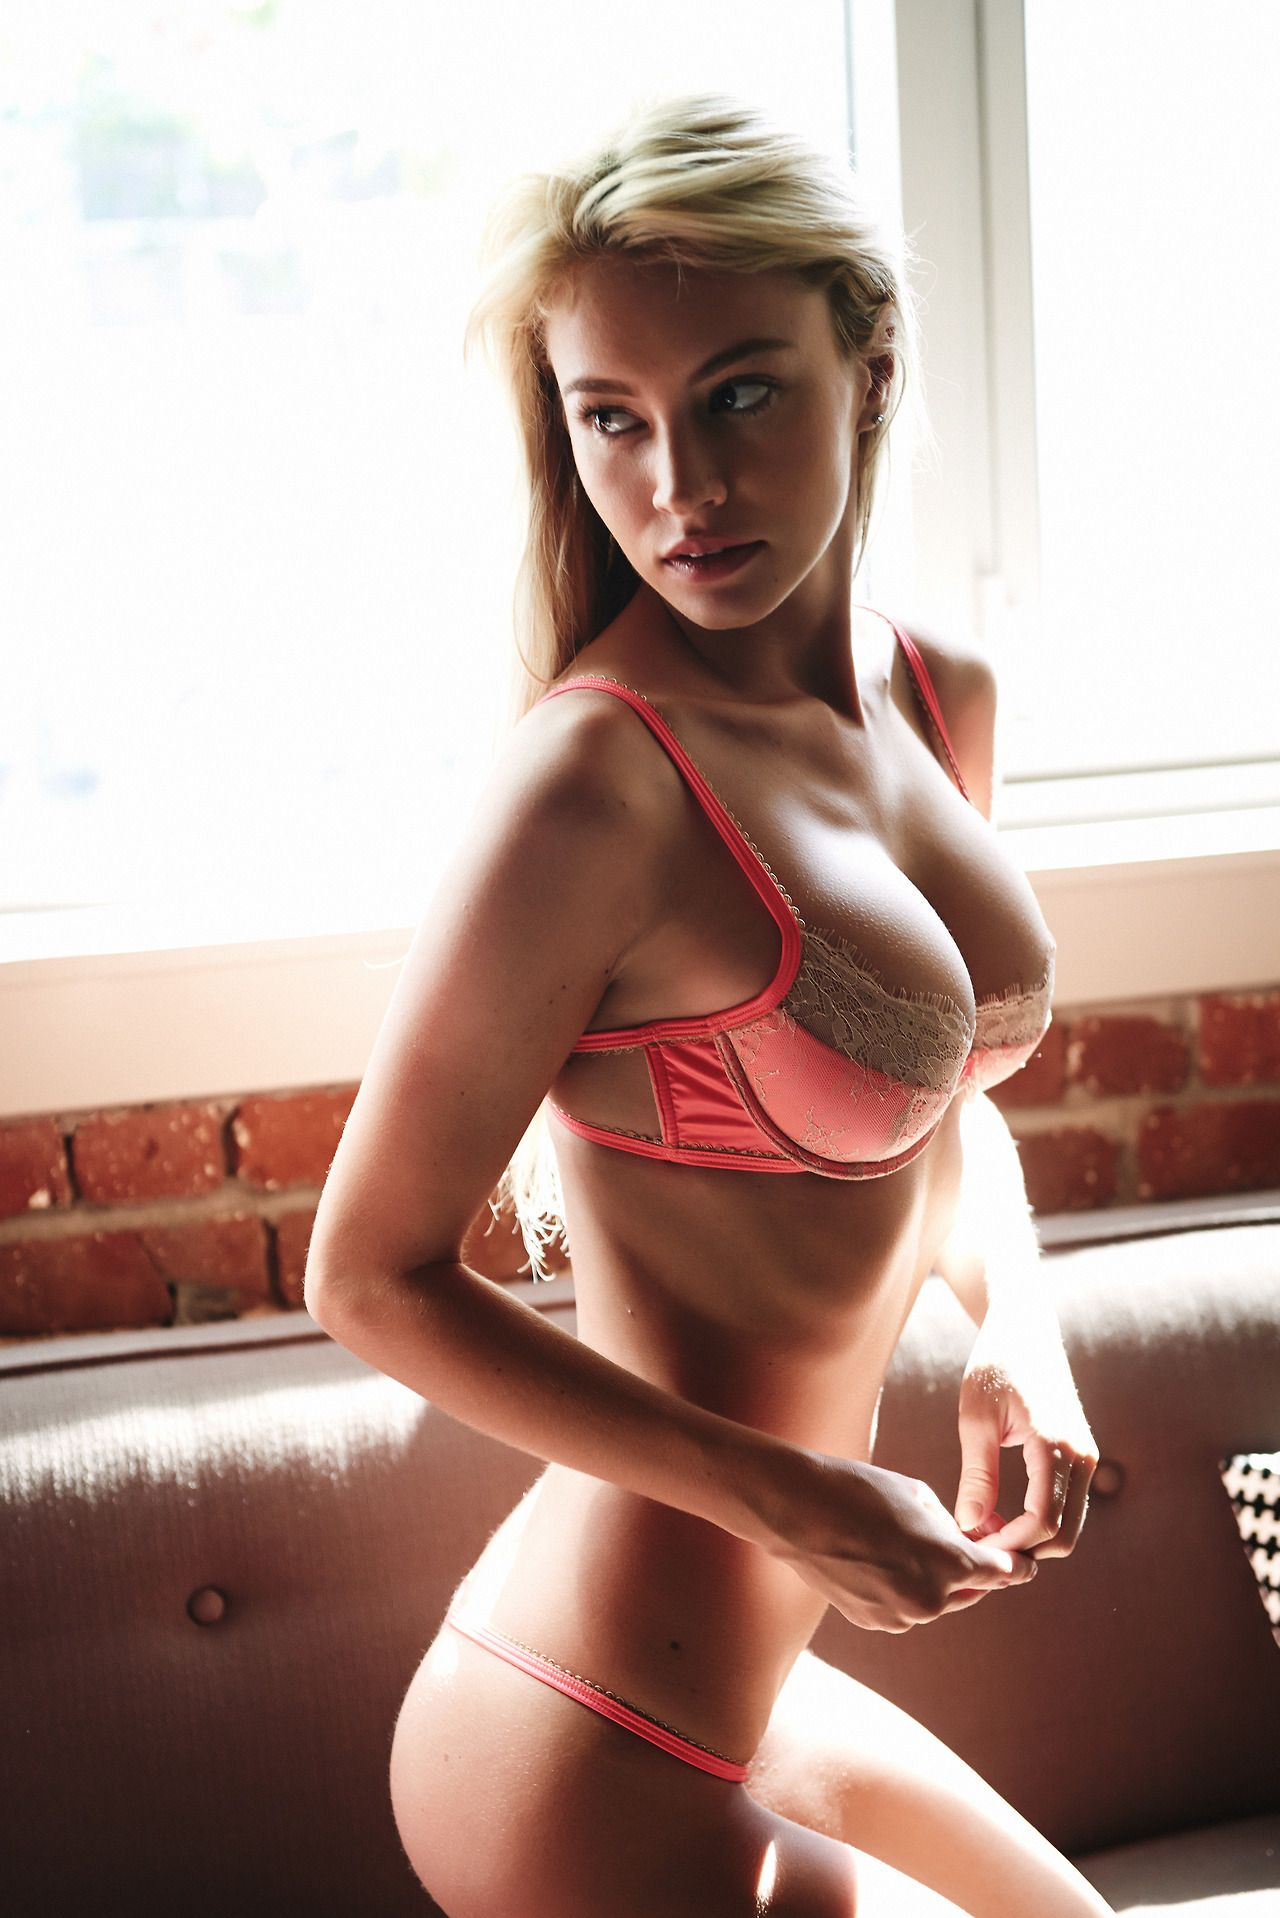 Bryana Holly Ass nude (88 photo), Cleavage Celebrites image